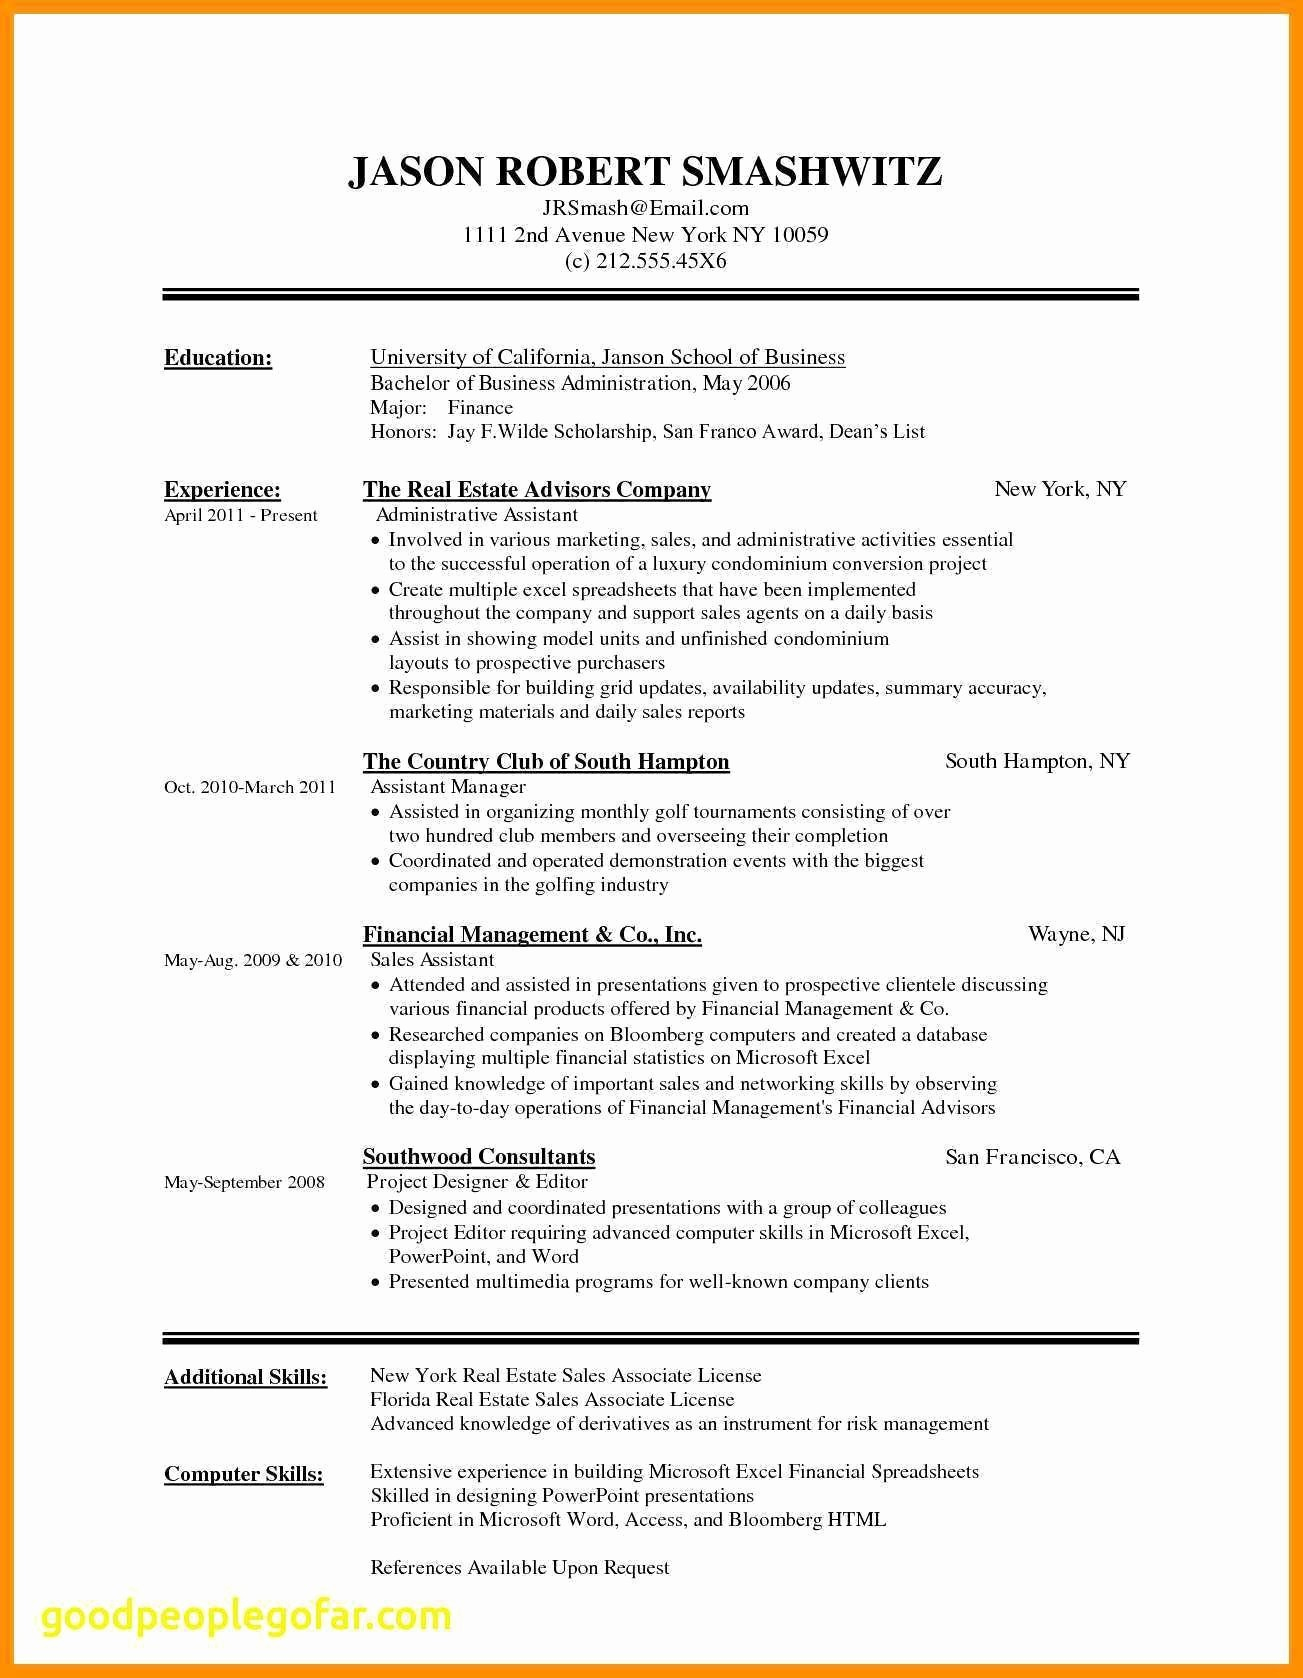 Resume Word Templates - 16 Fresh Free Resume Templates Microsoft